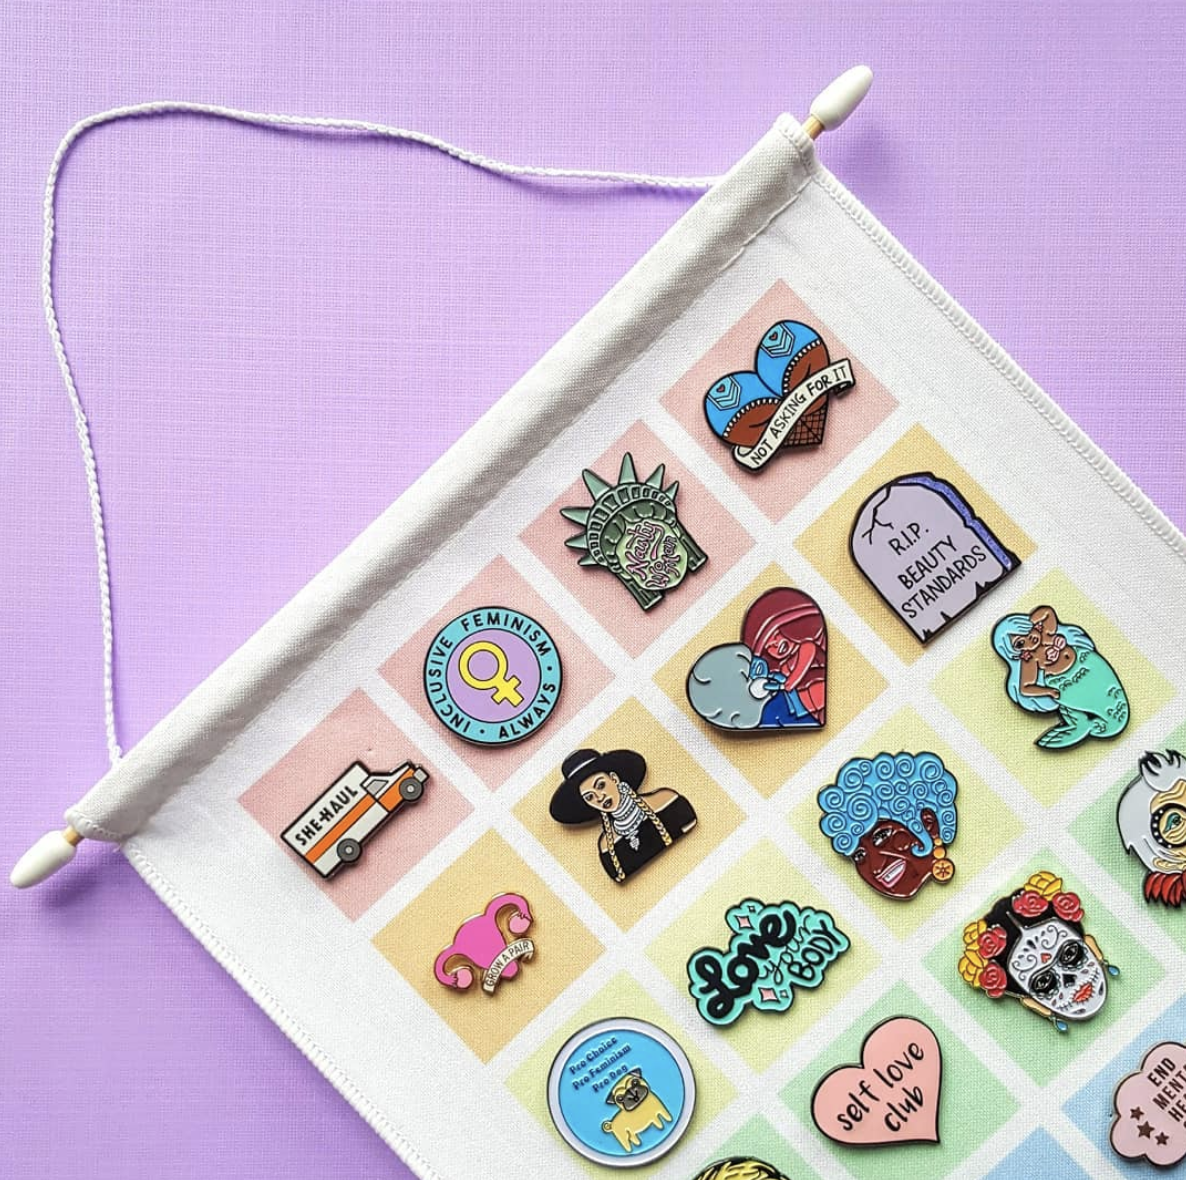 Feminist pins - Curated by the intersectional online gift-shop, Feminist Speakeasy.